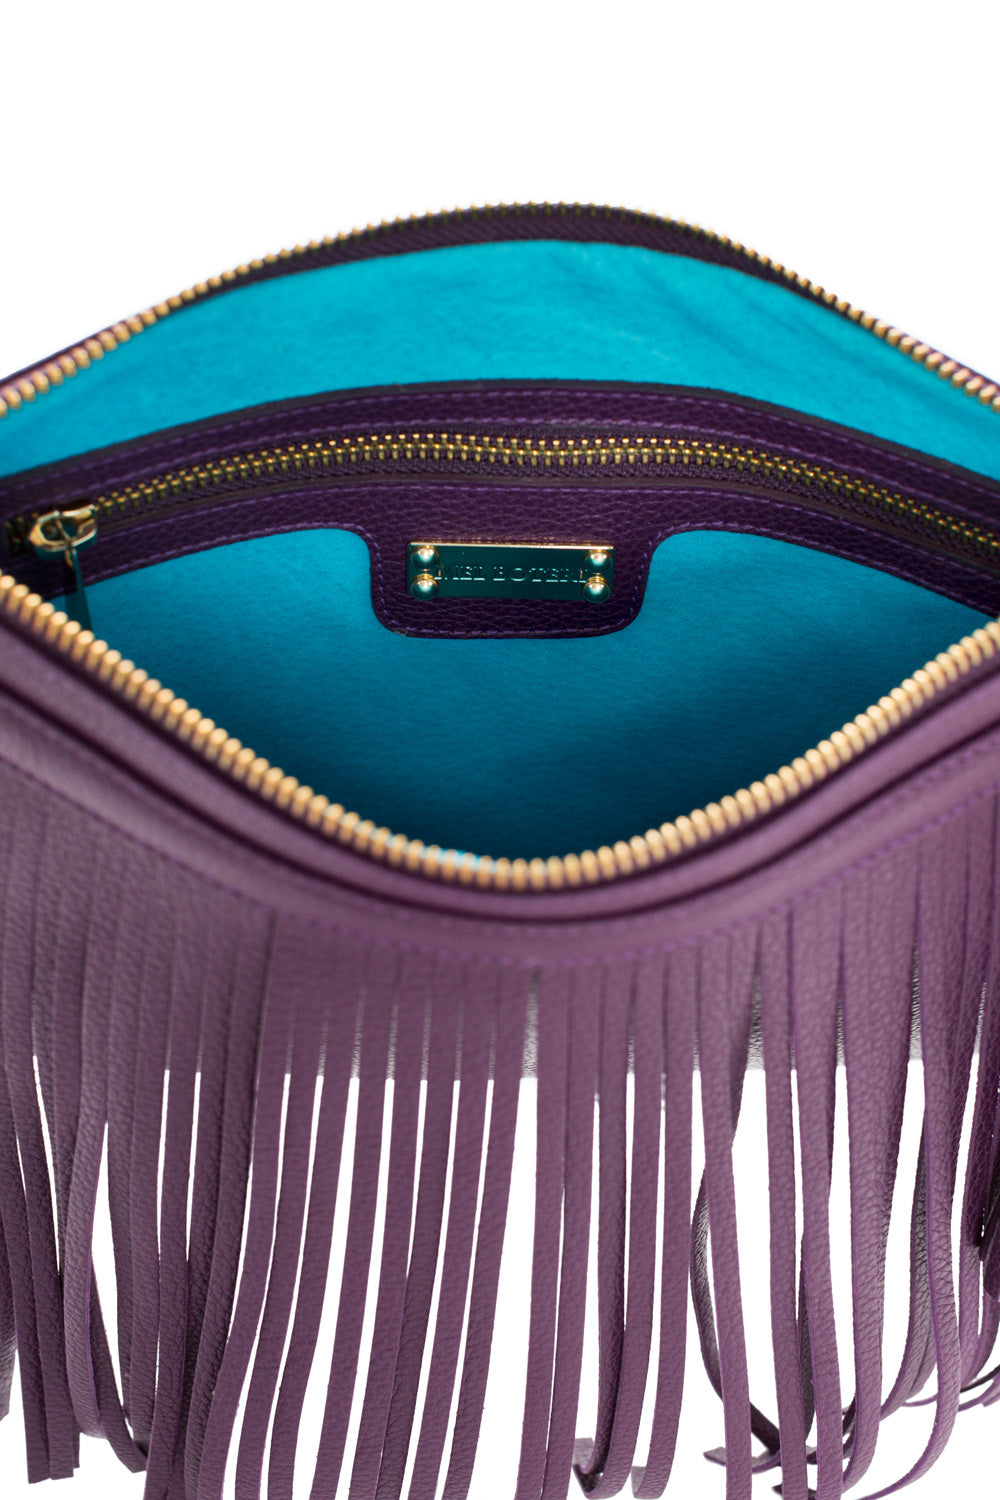 Eggplant Purple Leather 'Taylea Mini' Shoulder Bag | Mel Boteri | Interior View